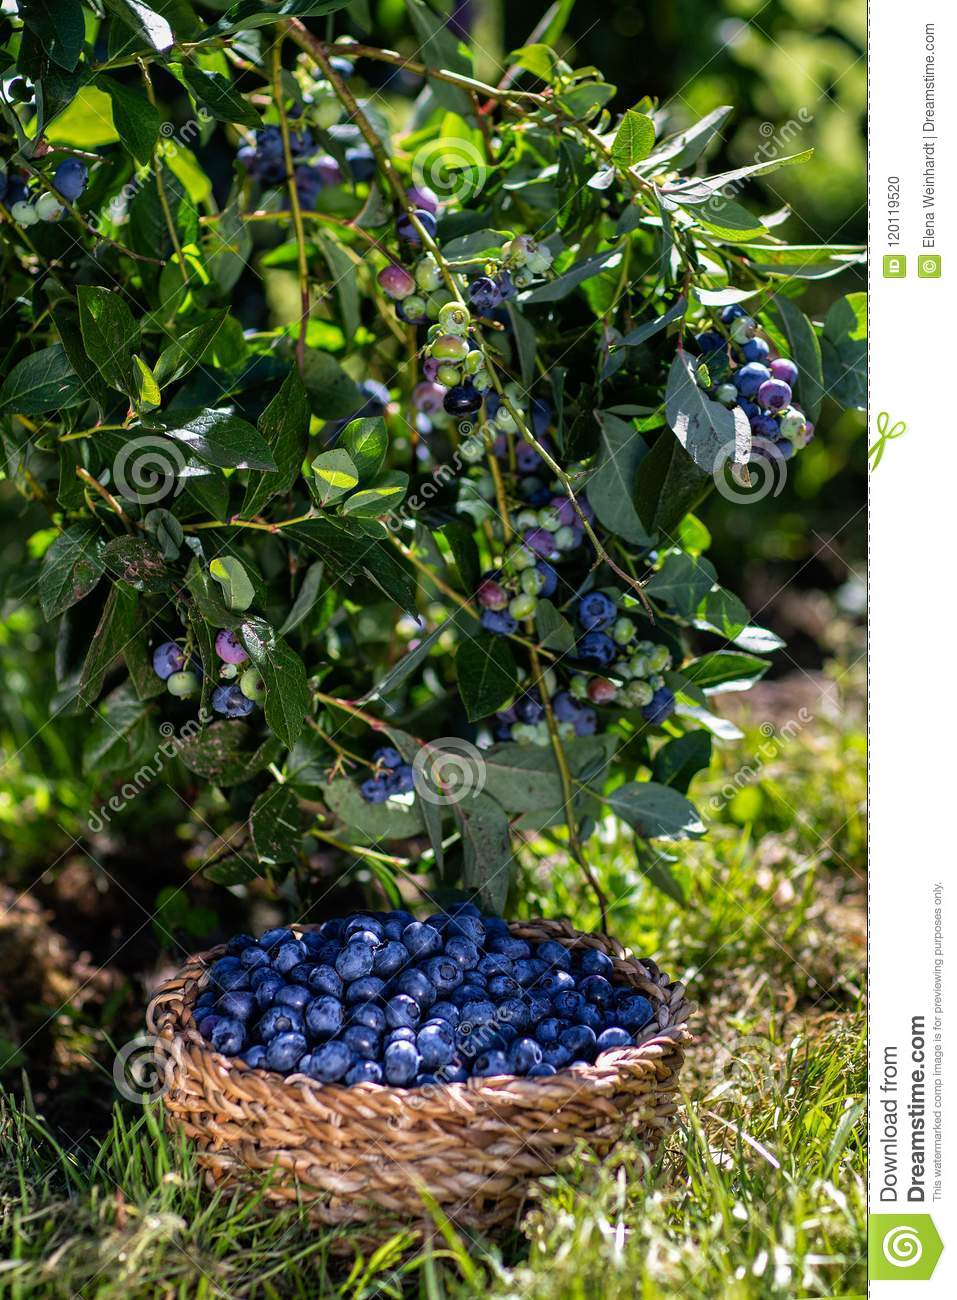 Branches of blueberries with berries and blueberries in the basket, harvesting